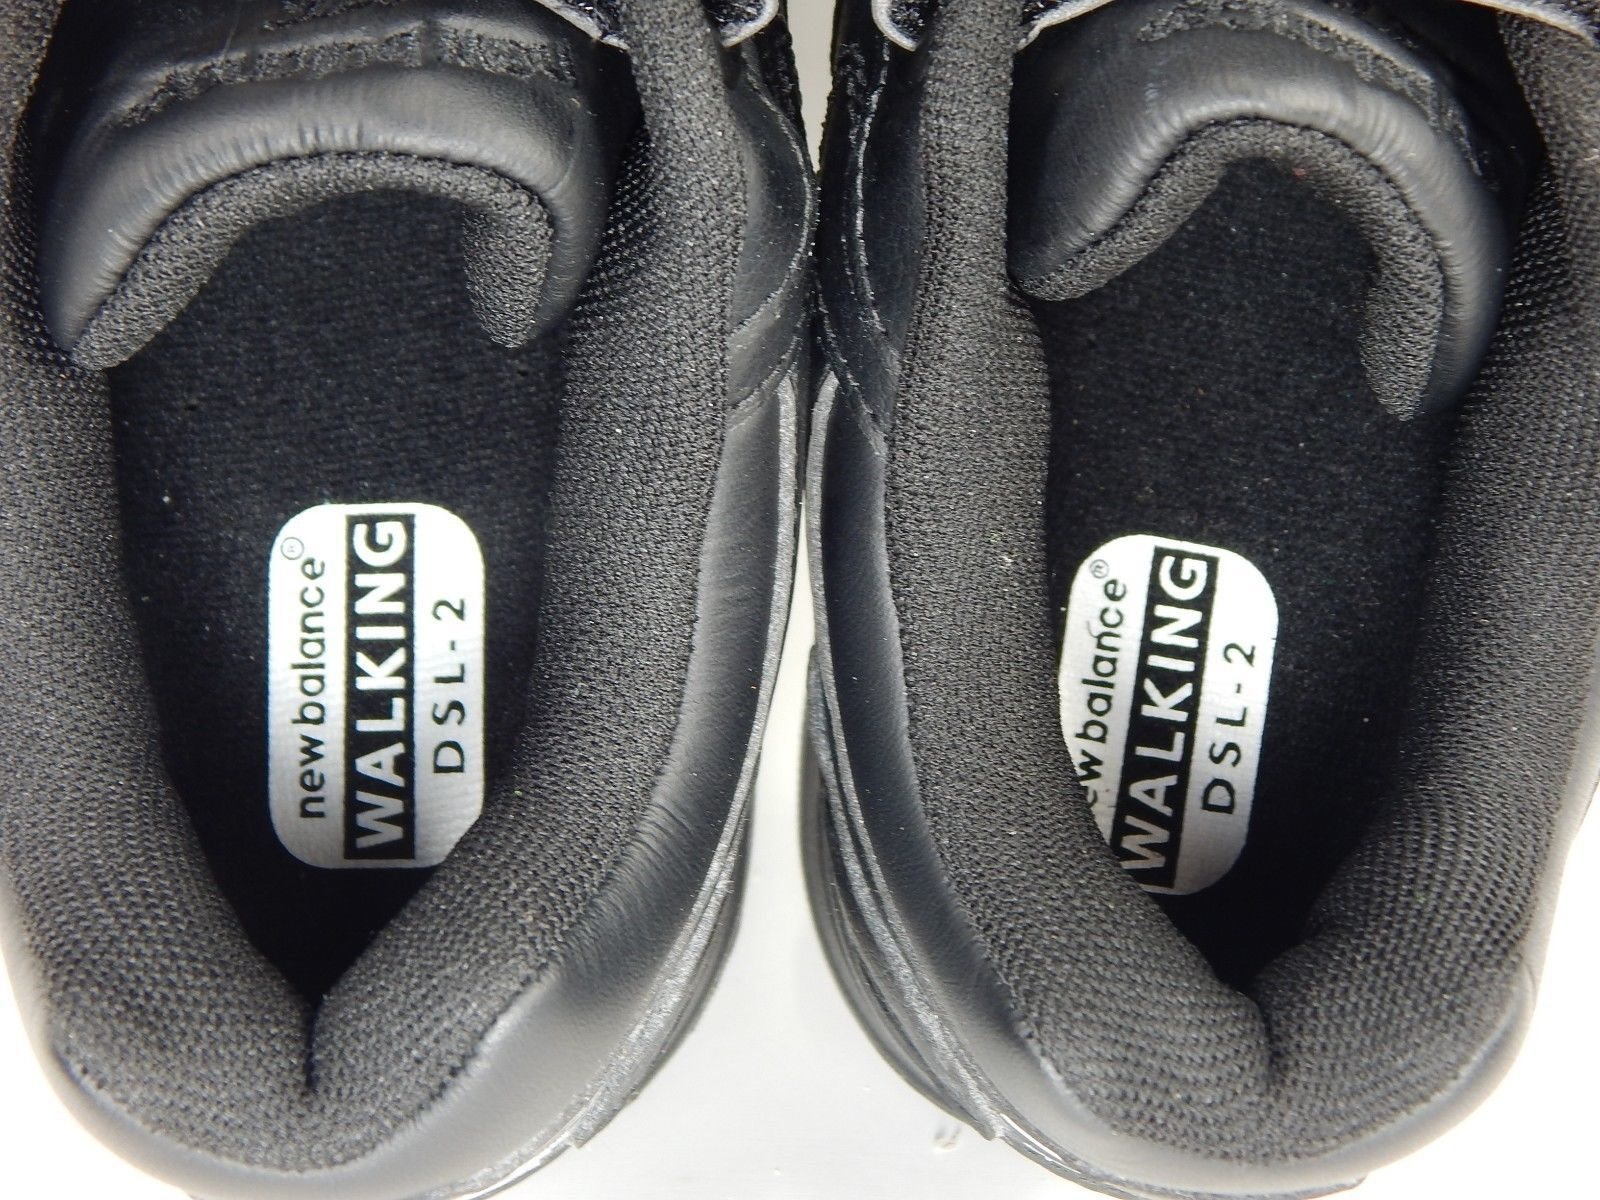 New Balance 576 Size US 8.5 M (D) EU 42 Men's Walking Shoes Black MW576VK